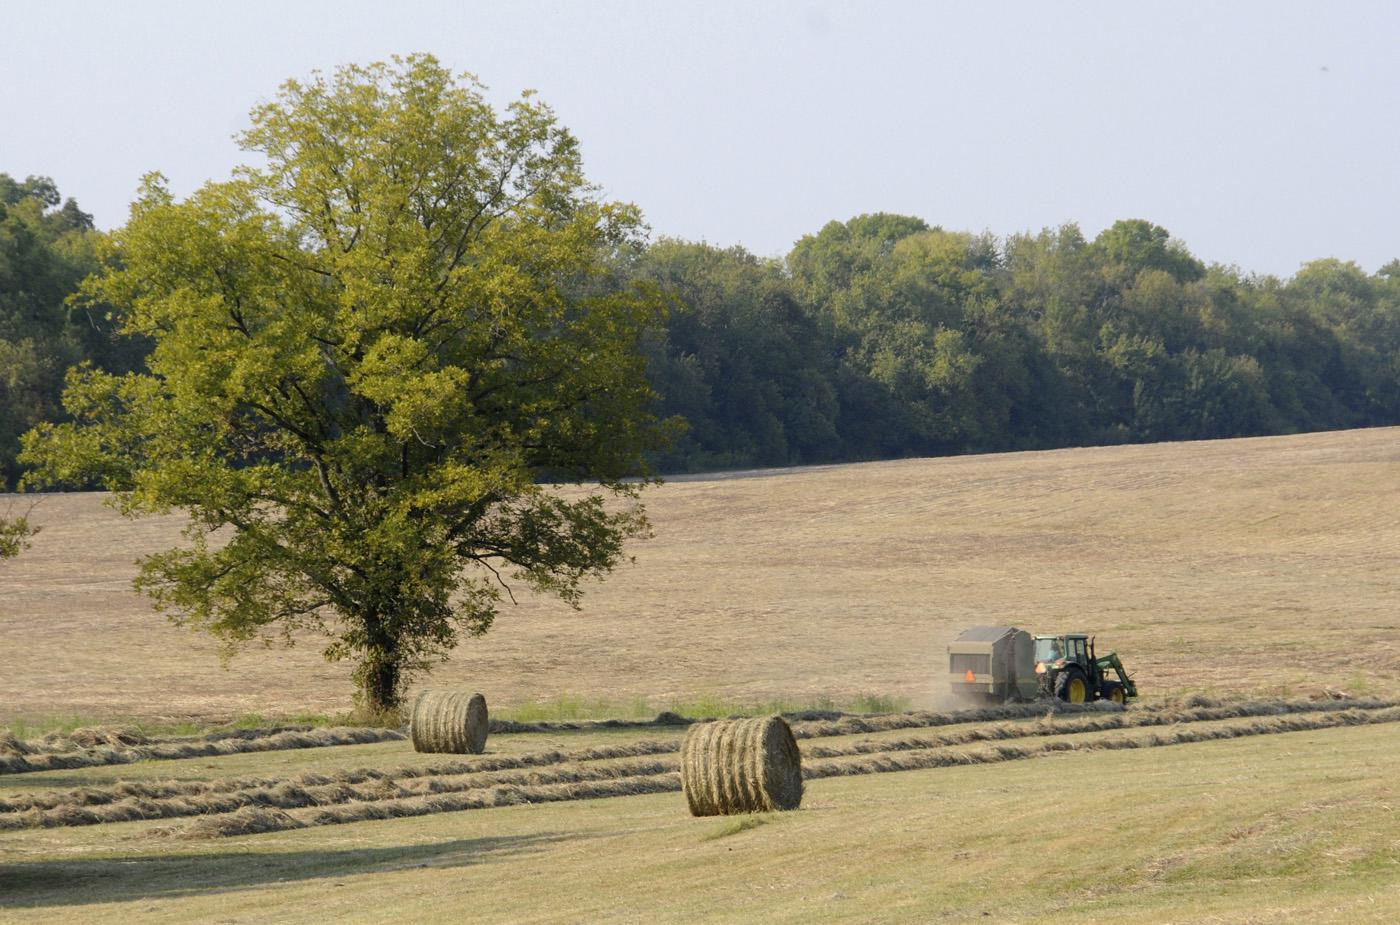 Hay production is a key component of a successful livestock producer's management plan. Forage management practices, including weed control and fertilizer use, will be part of the spring grazing school offered by MSU Extension Service. (Photo by Scott Corey)